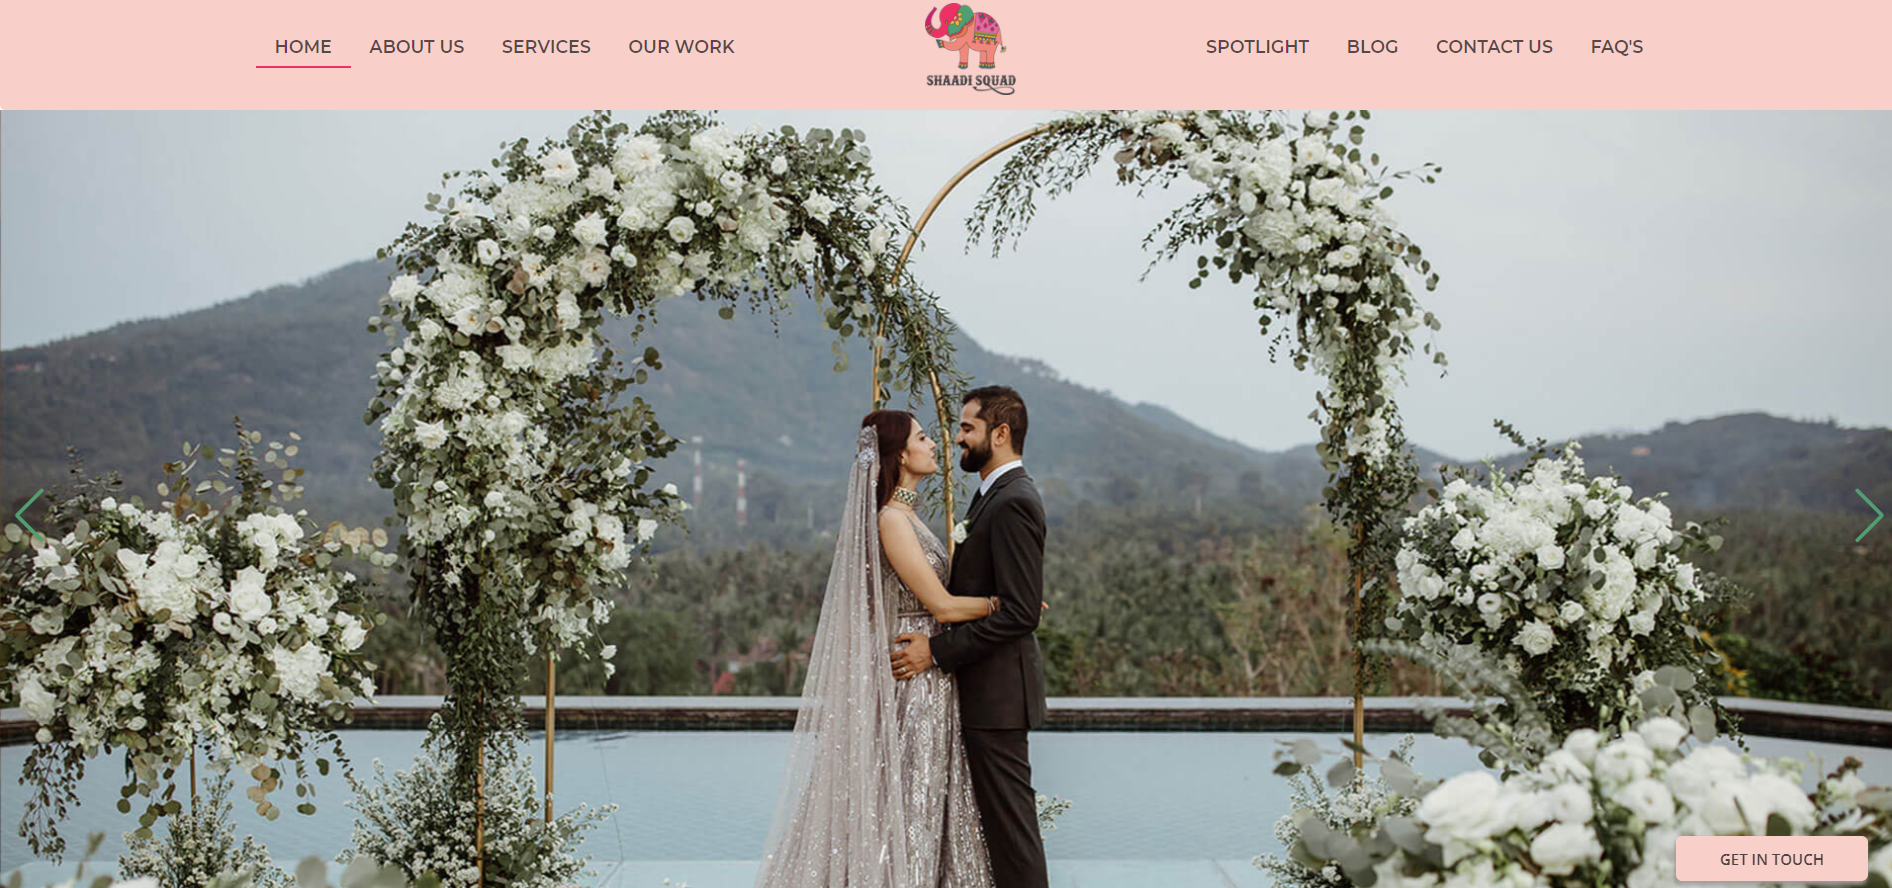 An homepage example of a event planning website